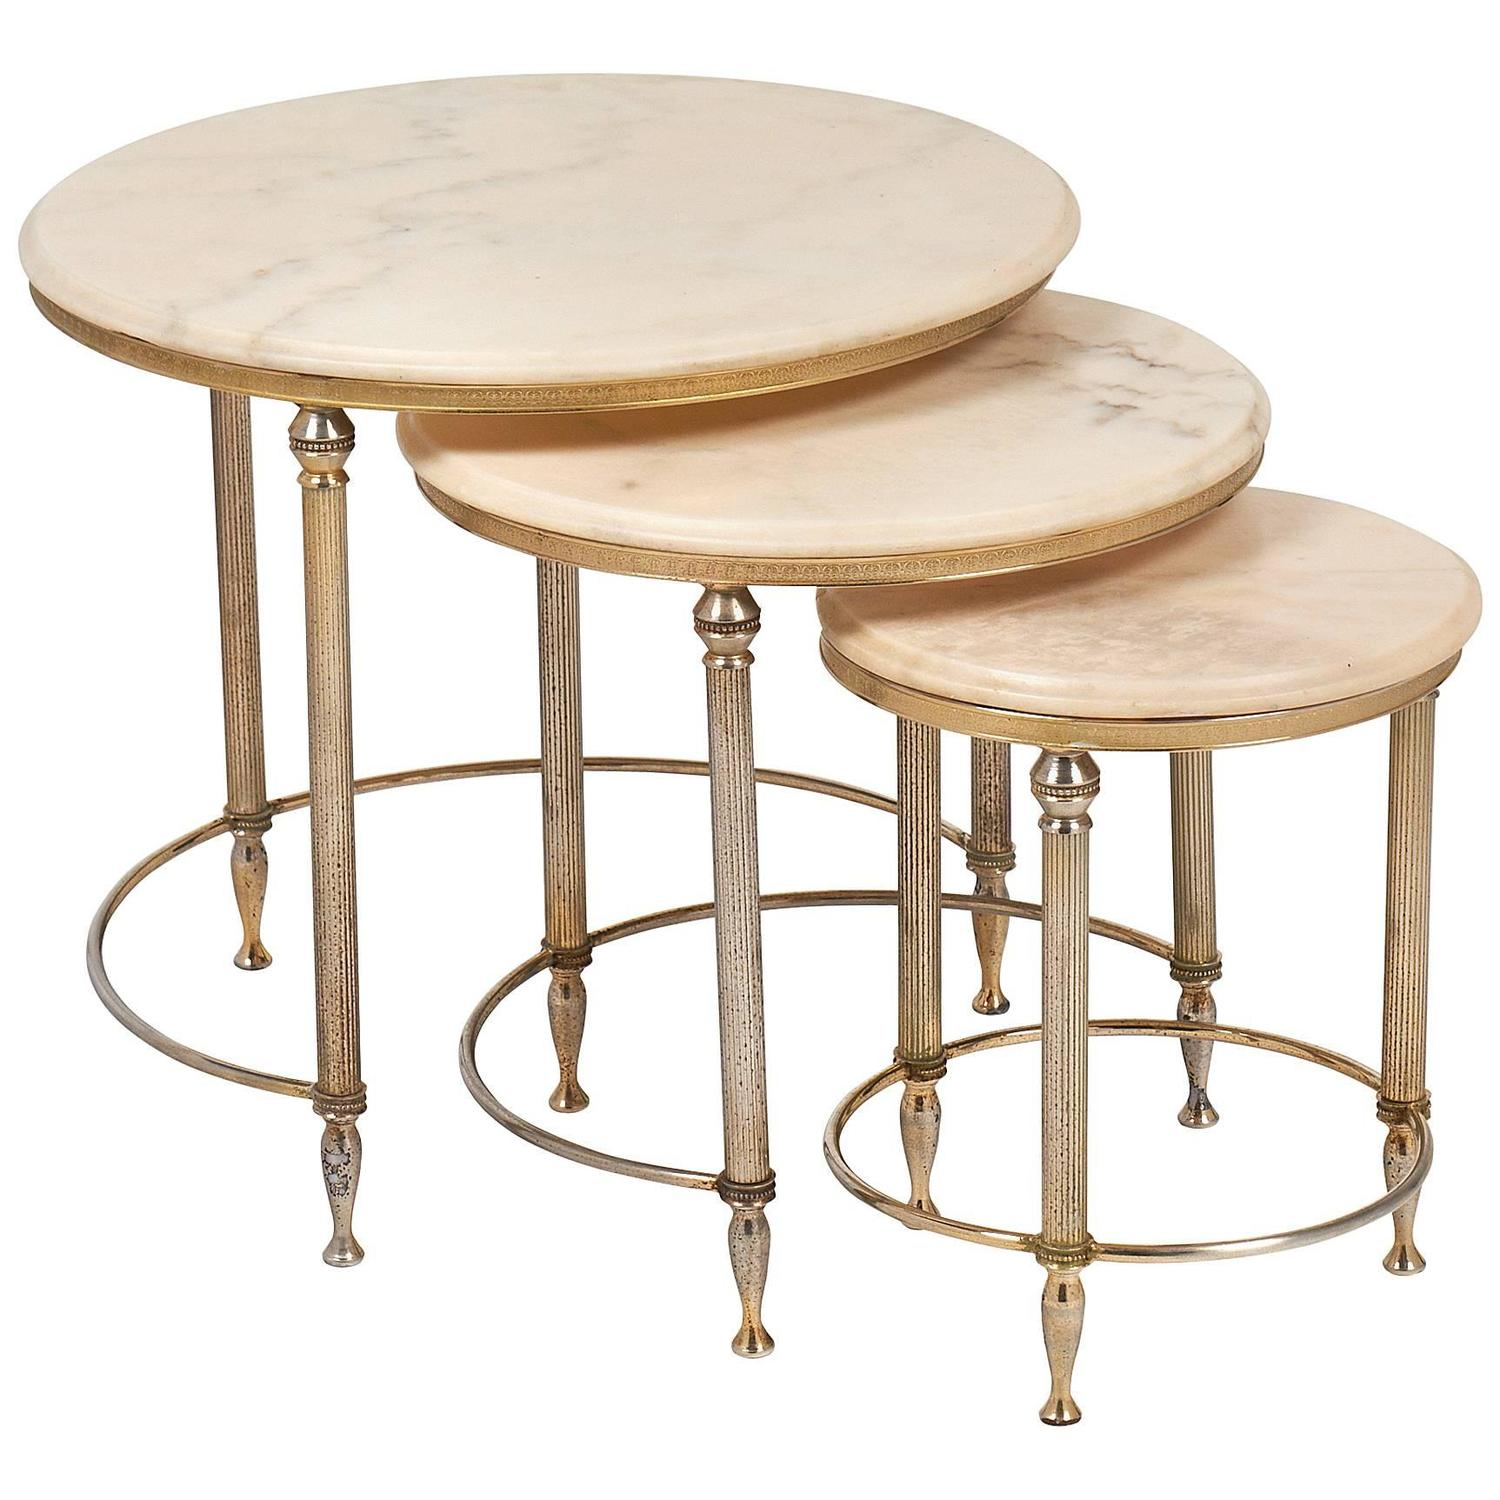 Neoclassic Set Of Three Onyx Top Bronze Nesting Tables At 1stdibs. Full resolution  portraiture, nominally Width 1500 Height 1500 pixels, portraiture with #8E6A3D.